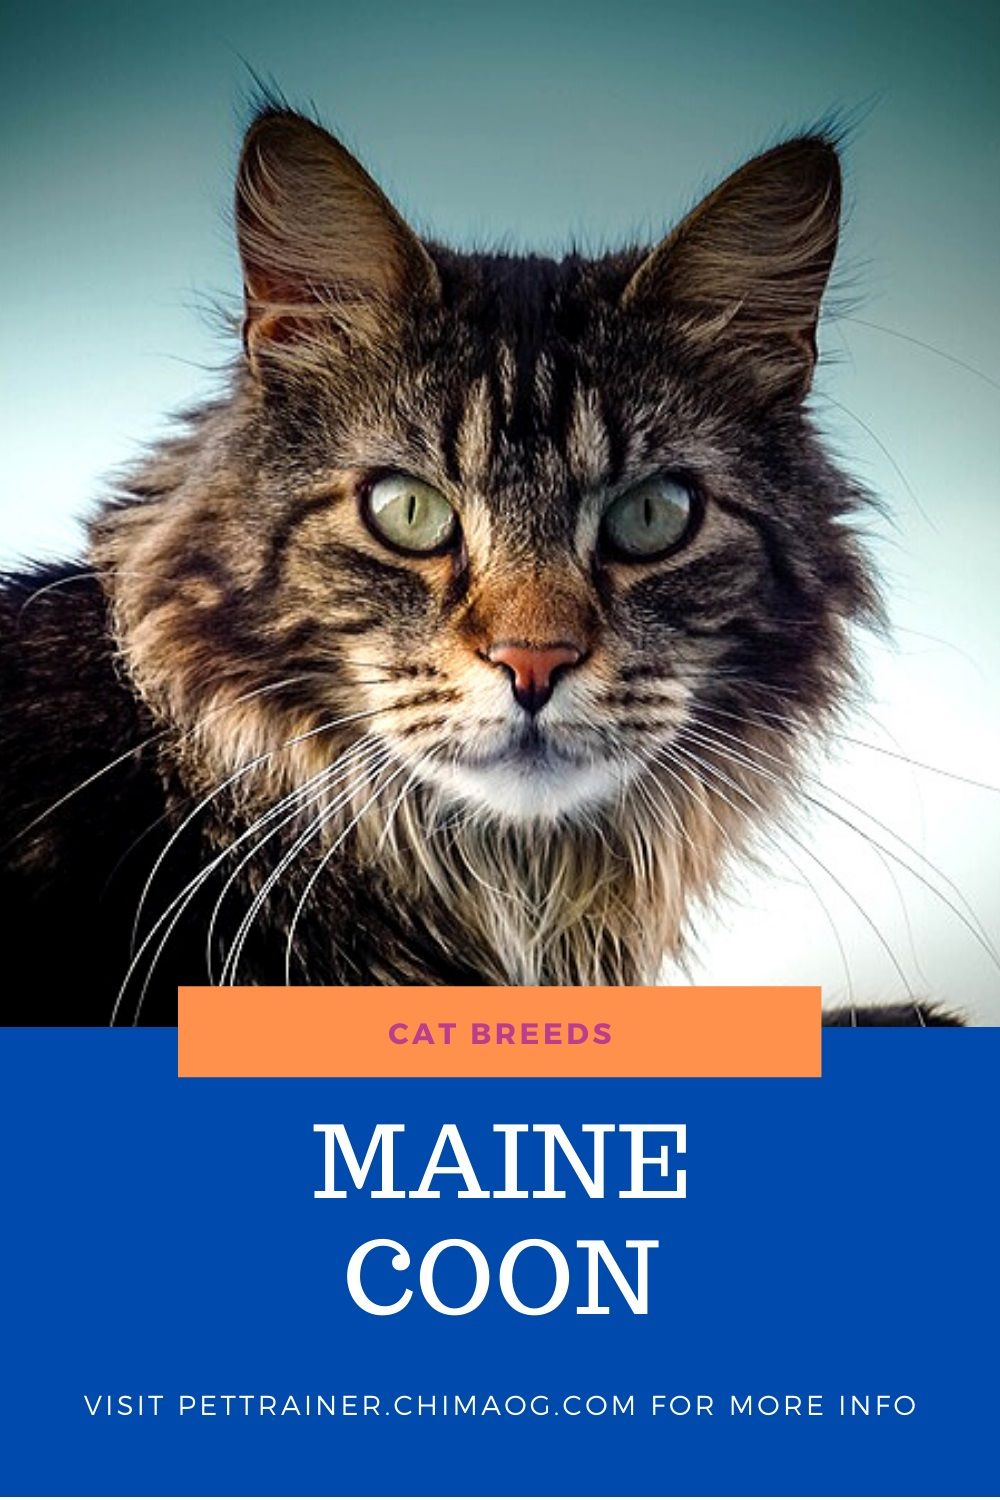 The Maine Coon Cats Are Very Well Known For There Large Size The Females Are Known To Weight Up To 16 Pounds And The Males Up To 18 Poun